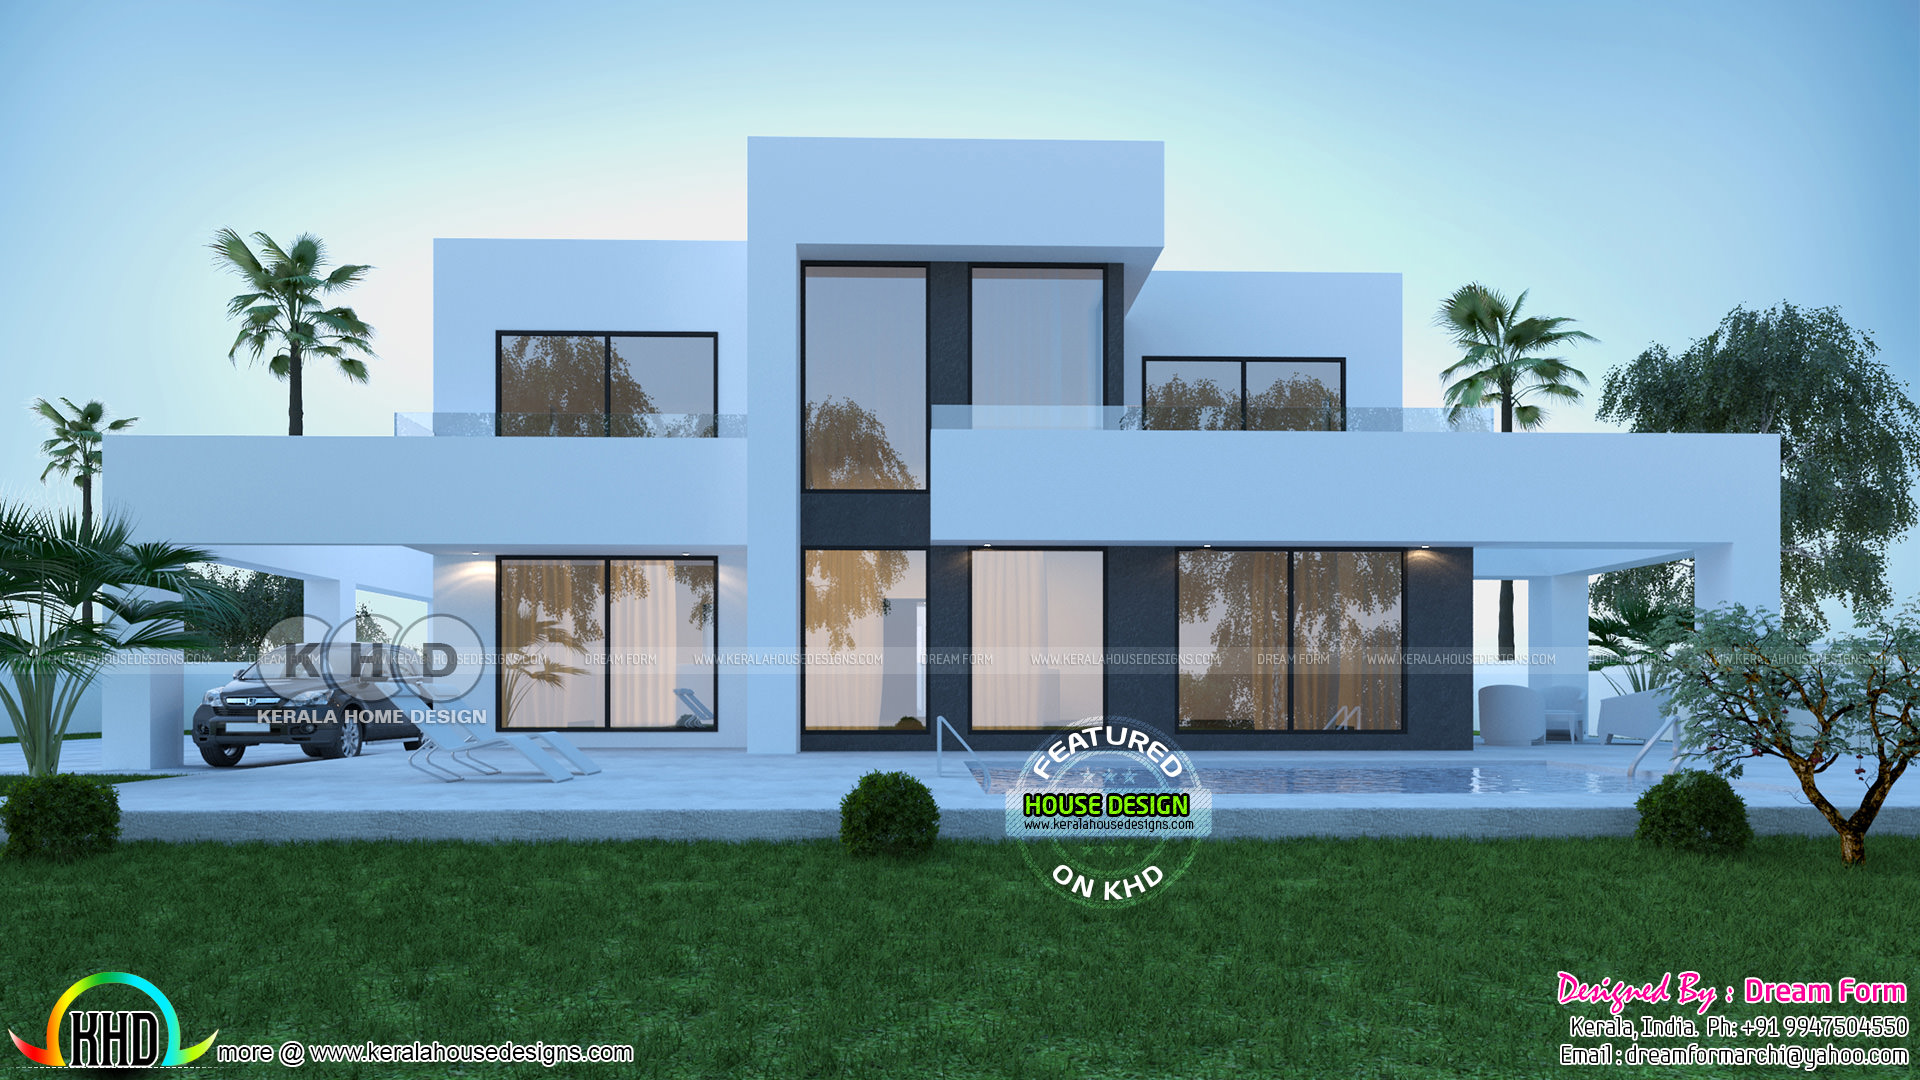 5 Bedroom Home Design Front And Back 3d Elevations Kerala Home Design And Floor Plans 8000 Houses